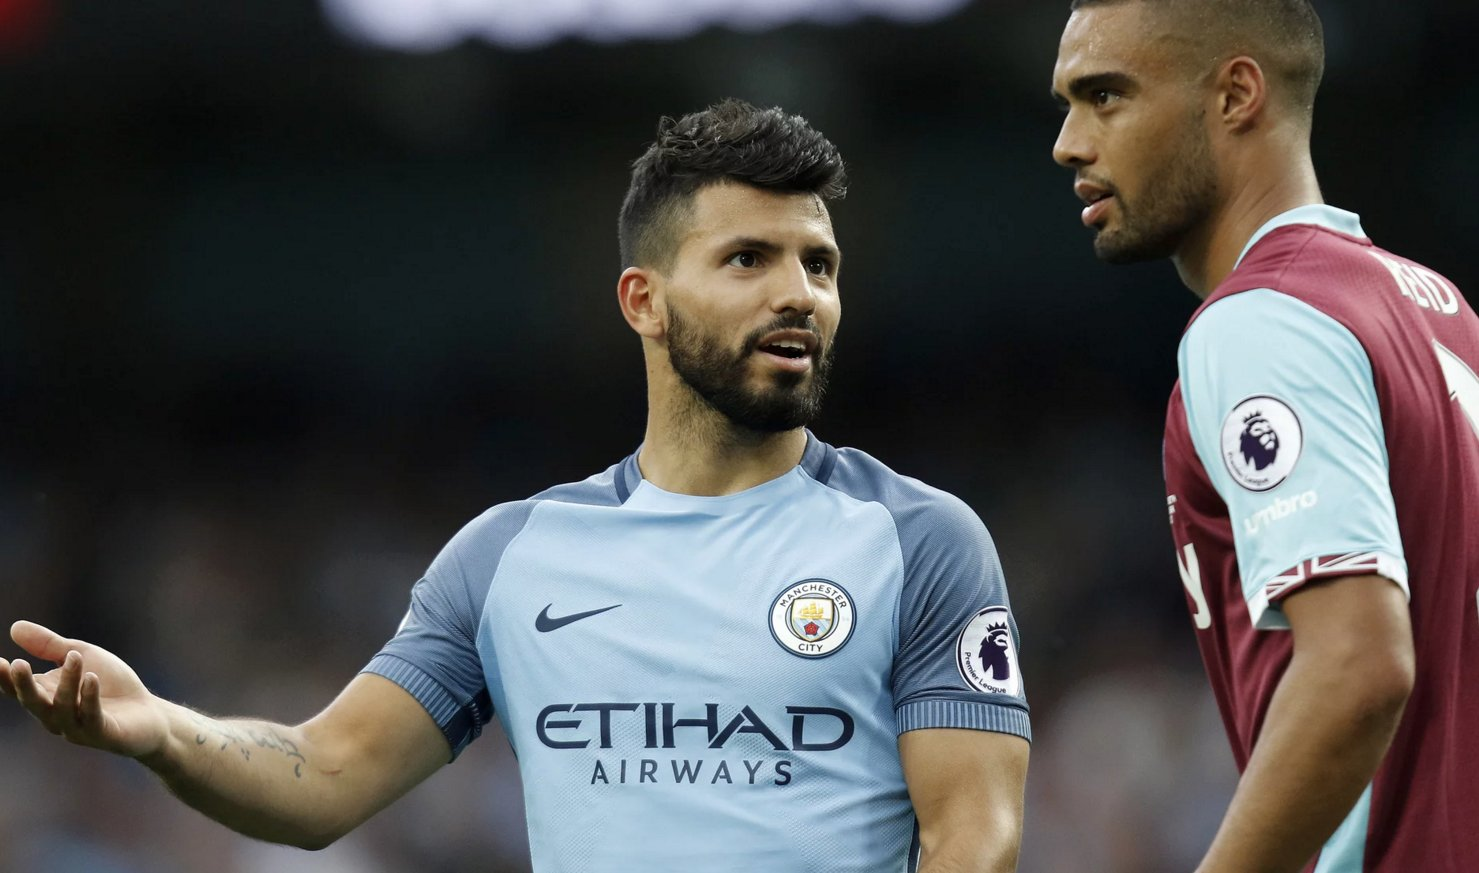 Aguero Charged With Violent Conduct, Faces Manchester Derby Ban